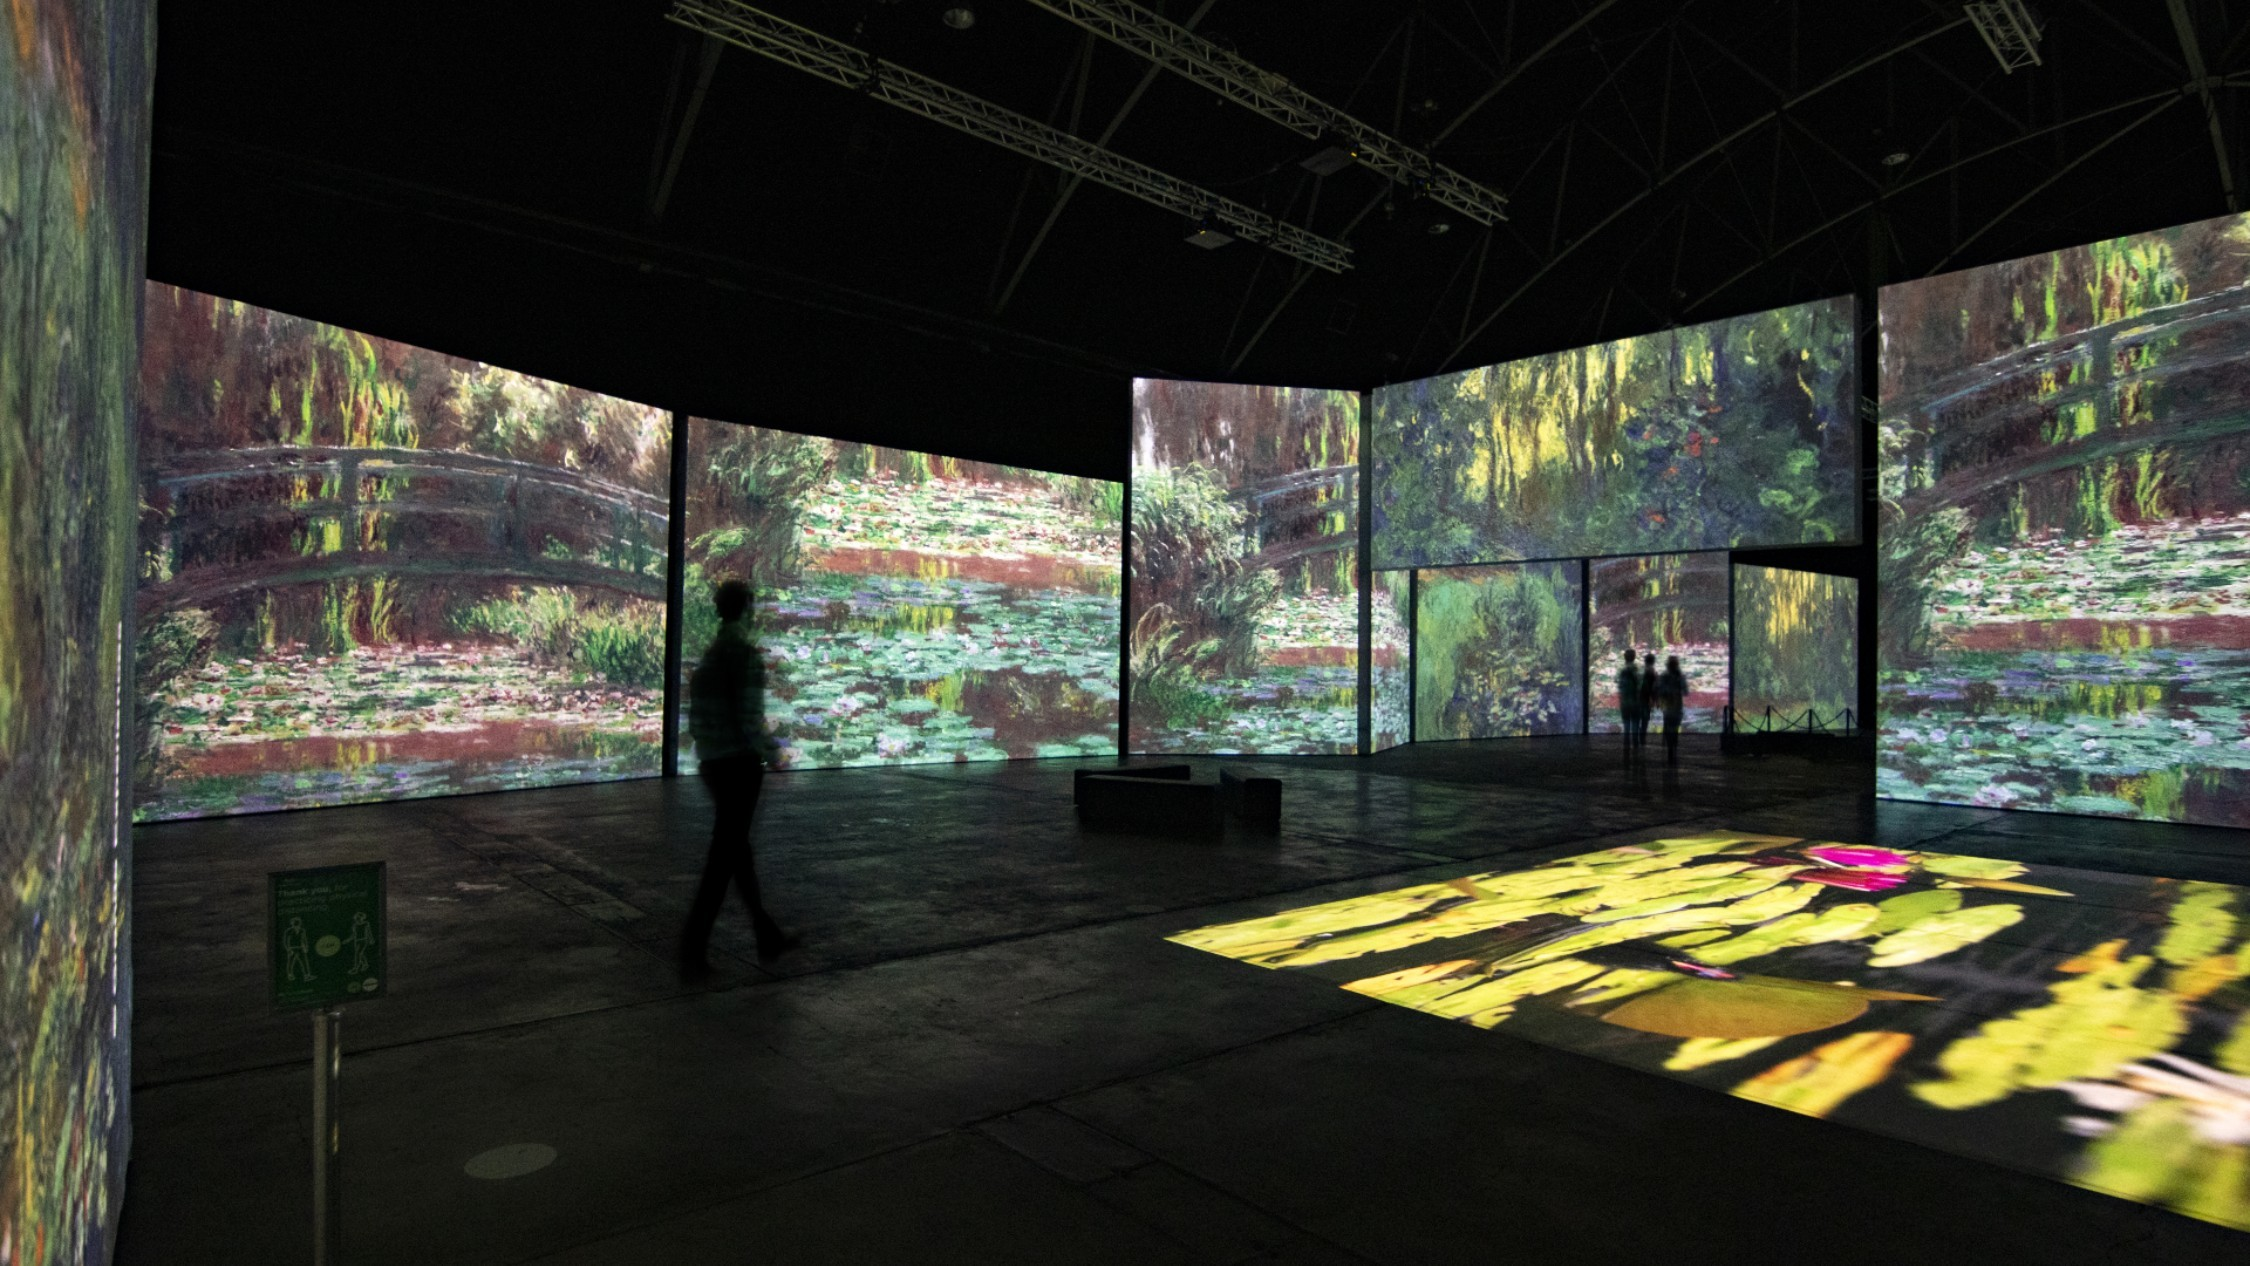 A silhouetted figure in front if IMAX-sized projections of Monet's famous water lily paintings